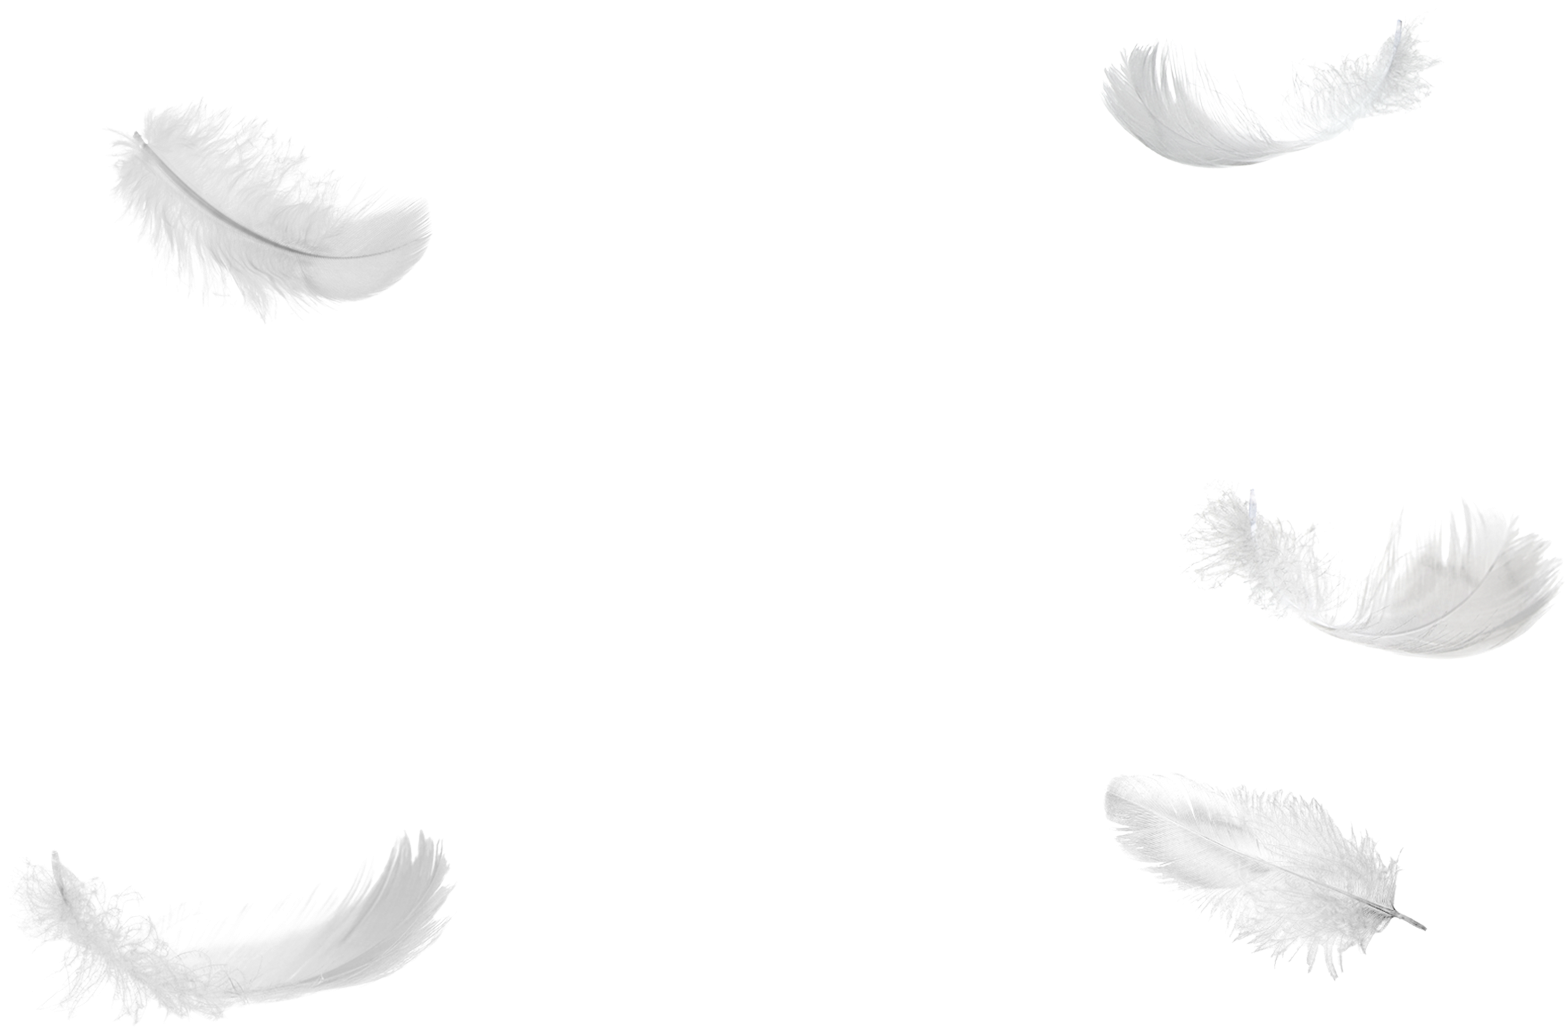 1495816576five Feathers Falling No Background Png - White ...